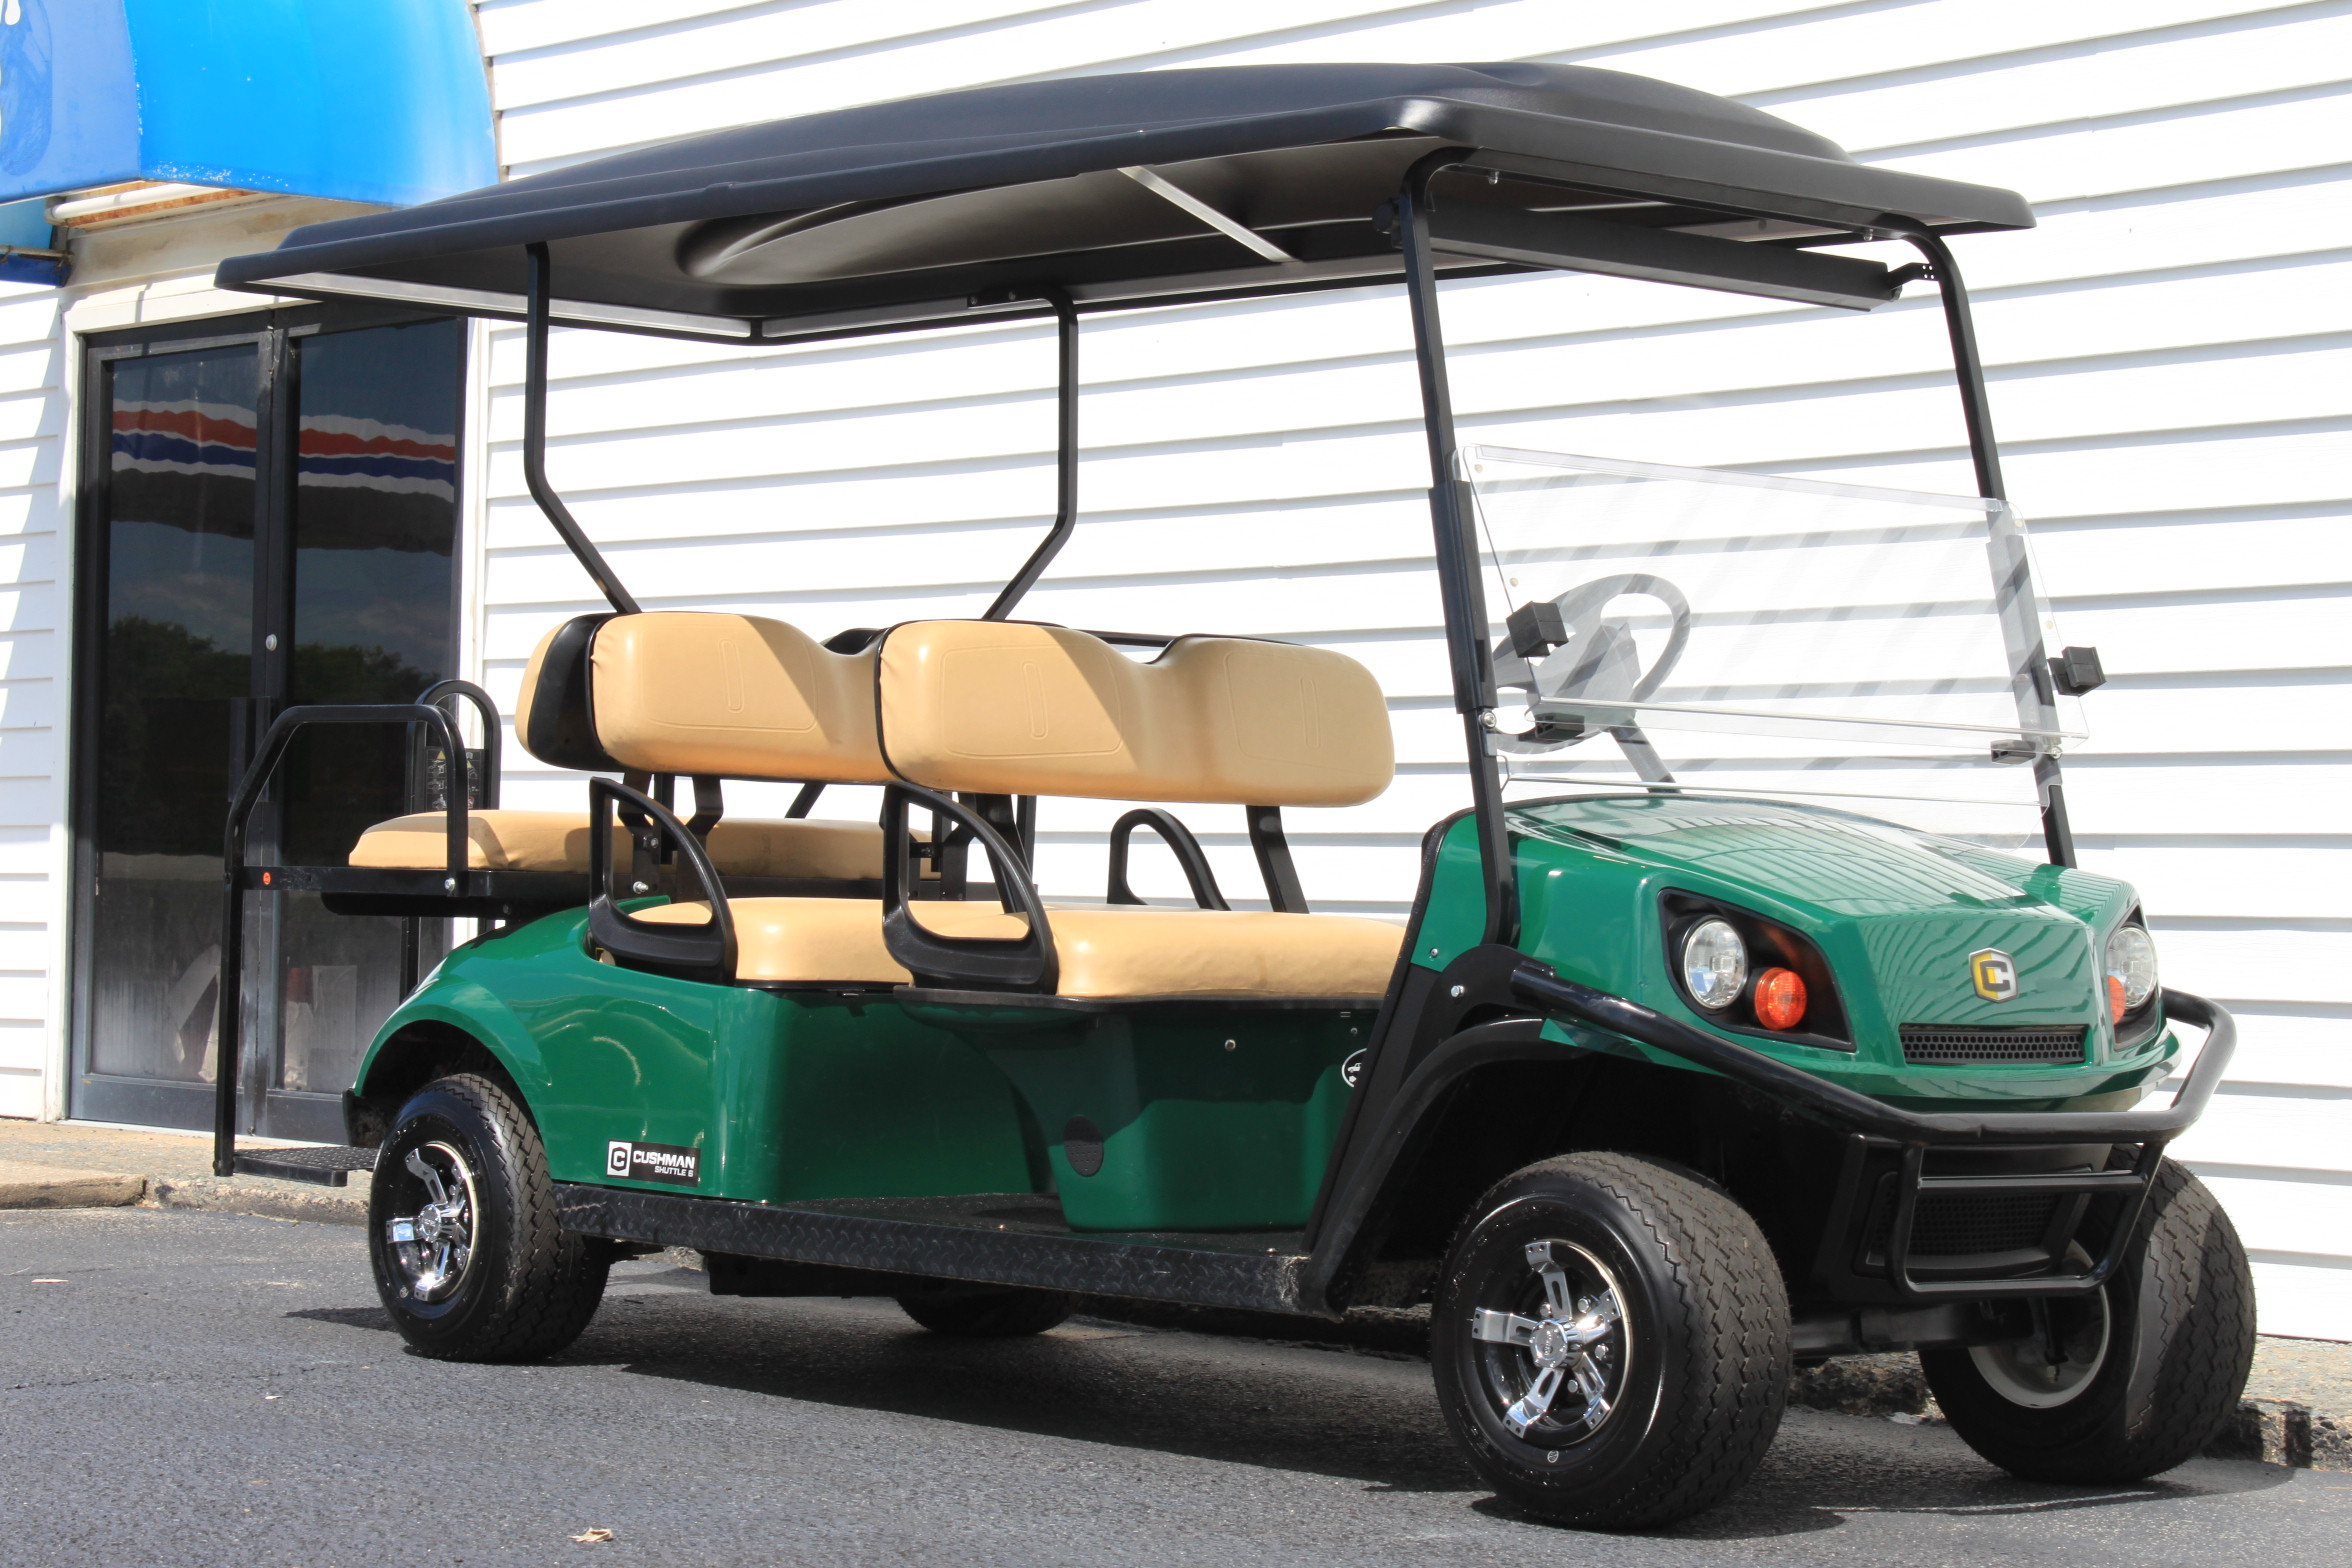 STOCK# 3187992, 2016 CUSHMAN 6 PASSENGER GAS CART